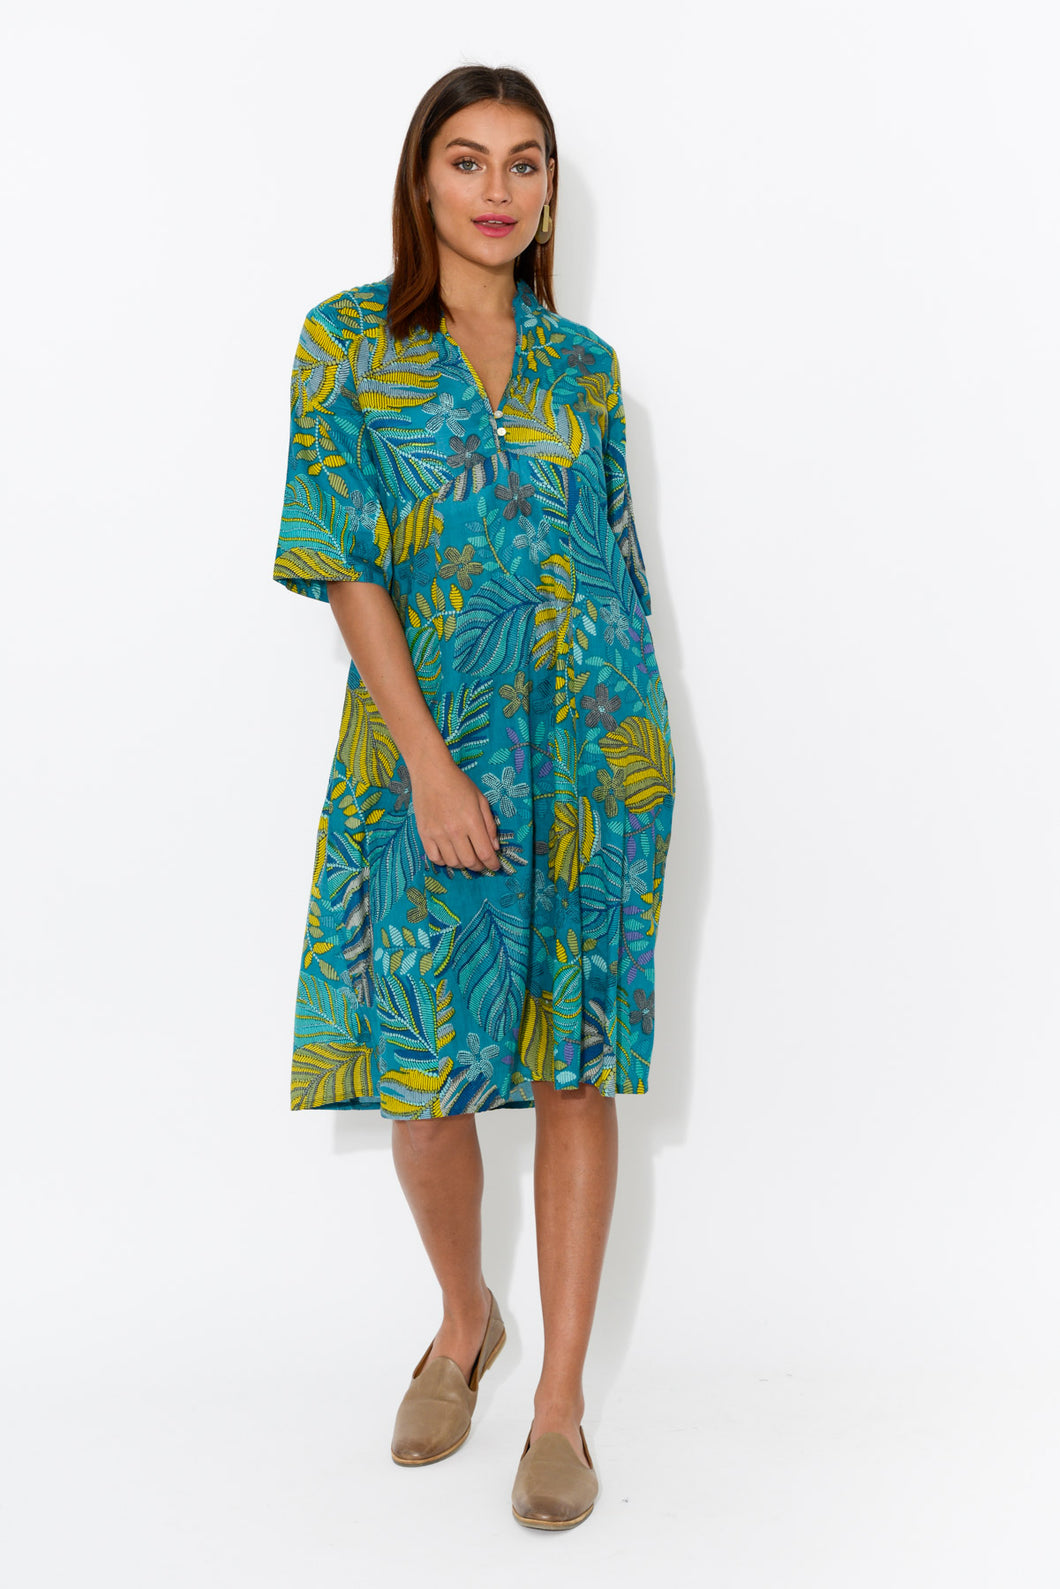 Mareeba Tropic Palm Sleeved Cotton Dress - Blue Bungalow